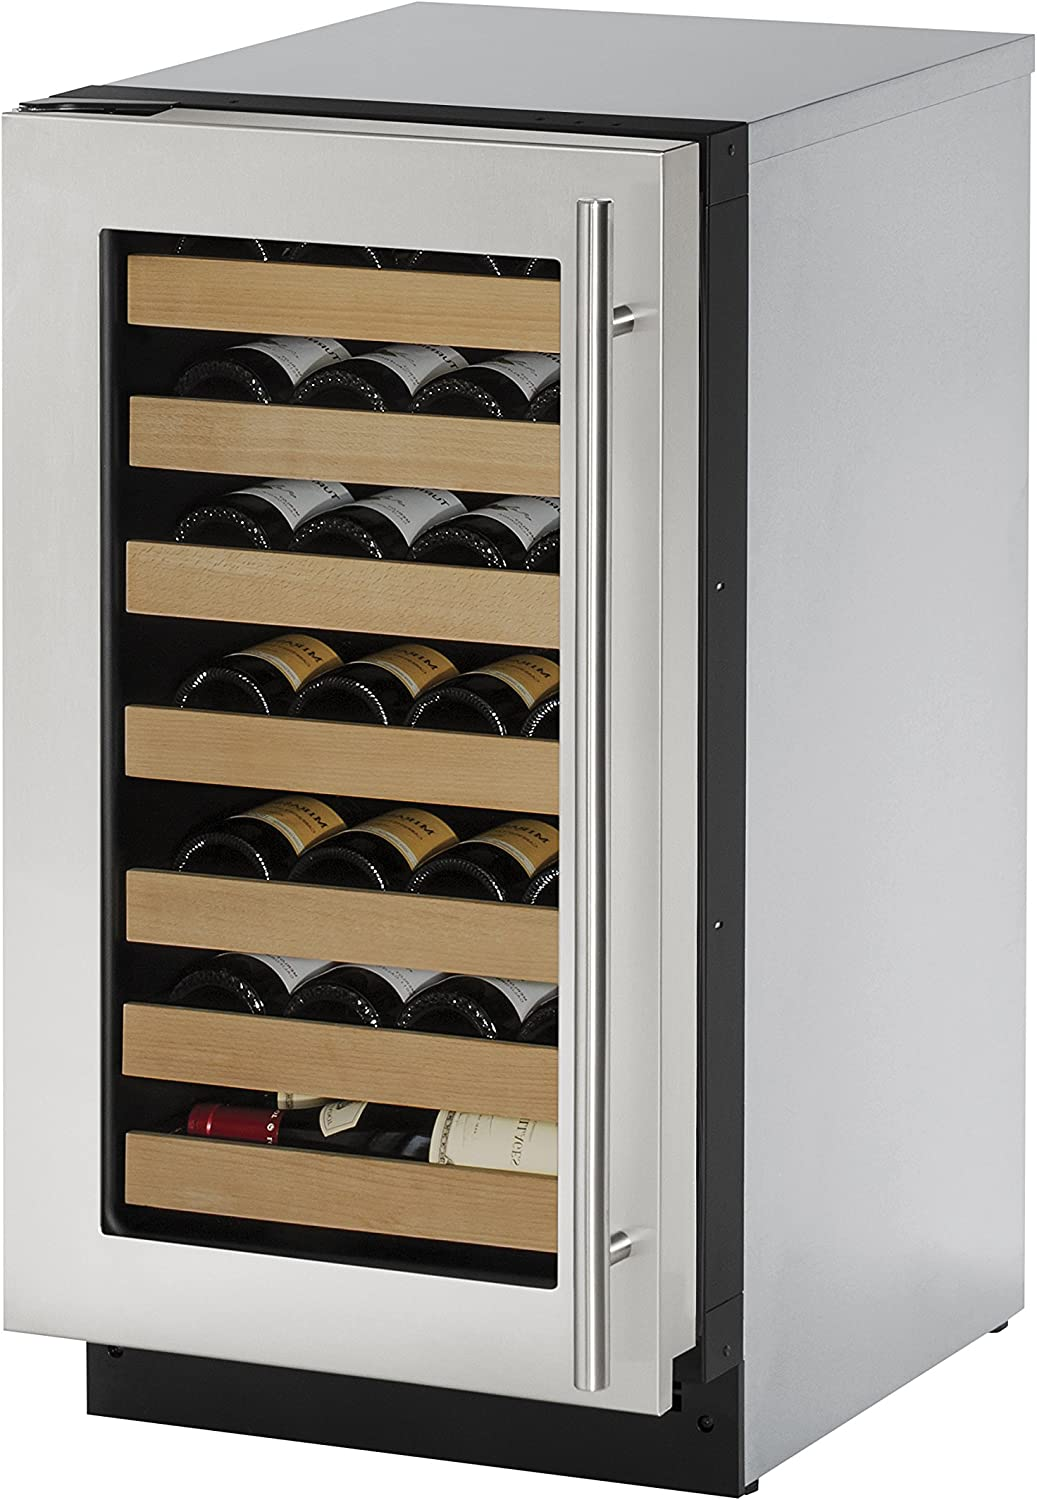 U-Line U2218WCS01A Built-in Wine Storage Stainless Import Steel Attention brand 18